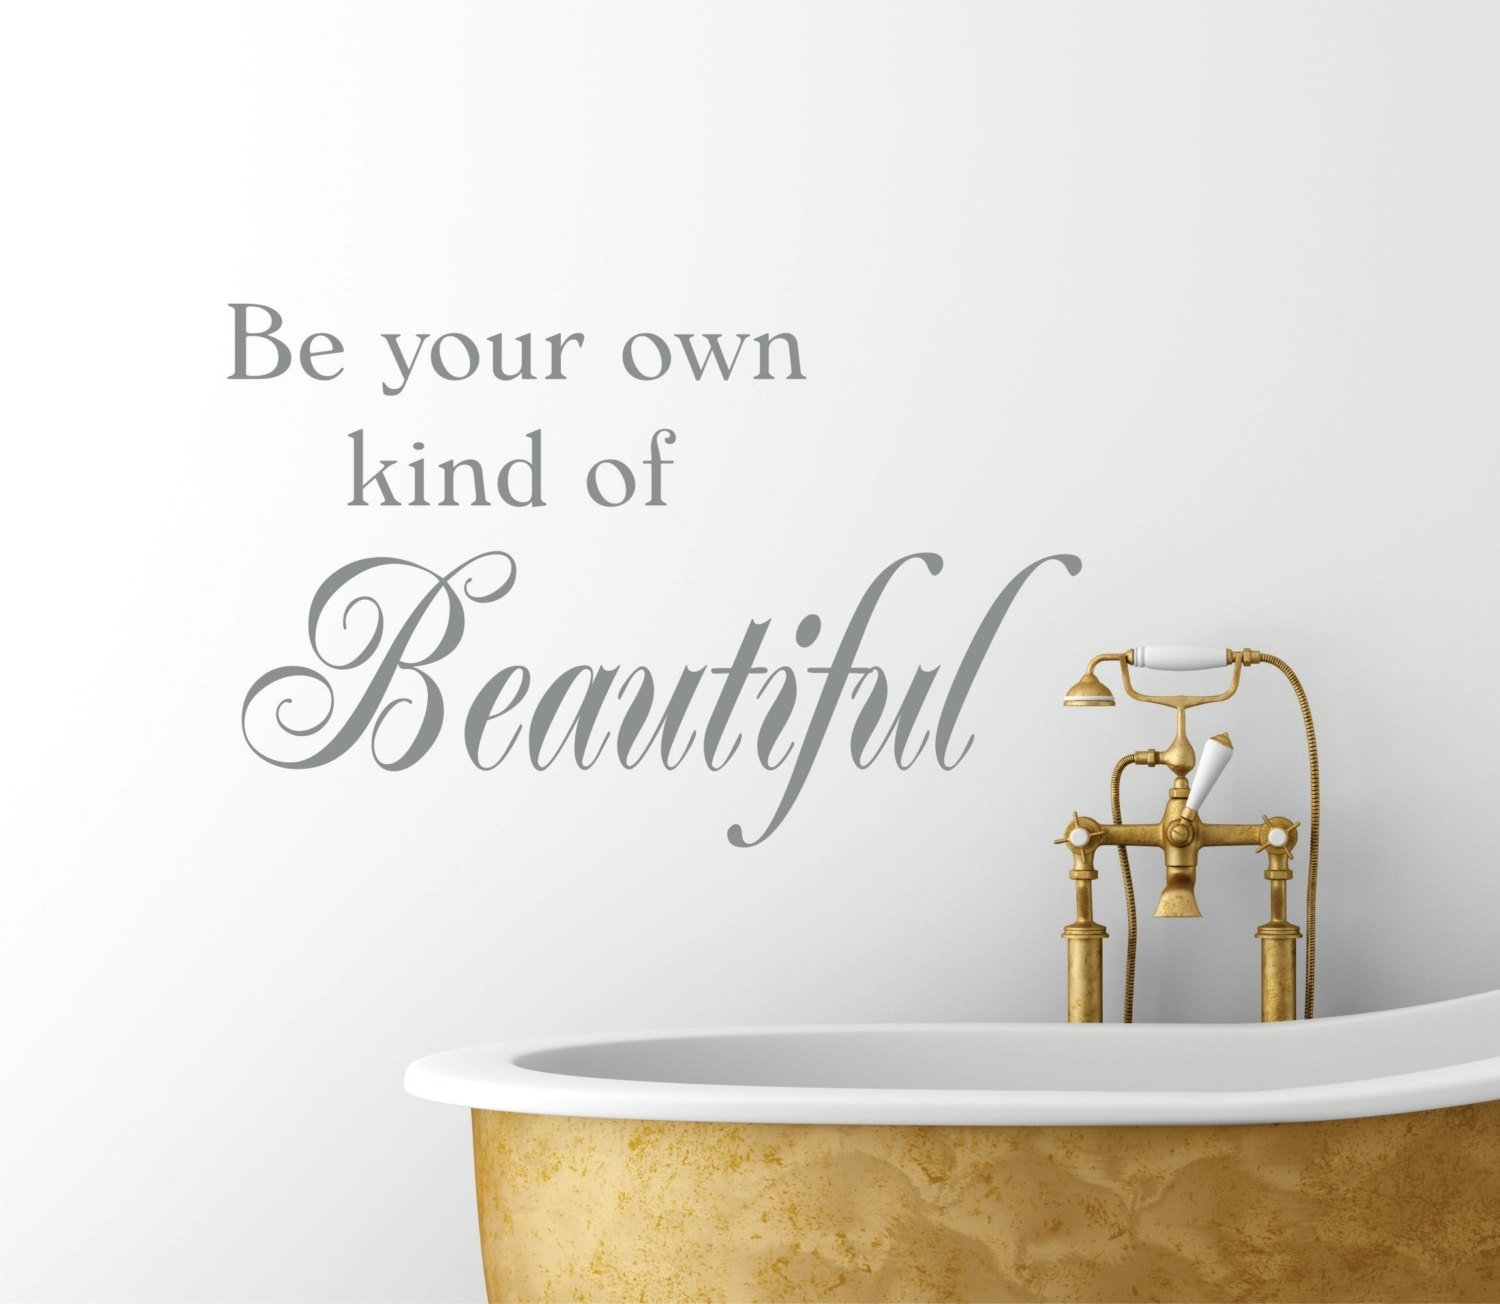 Be Your Own Kind Of Beautiful Vinyl Wall Decal // Bathroom Decor With Regard To Newest Be Your Own Kind Of Beautiful Wall Art (View 2 of 15)